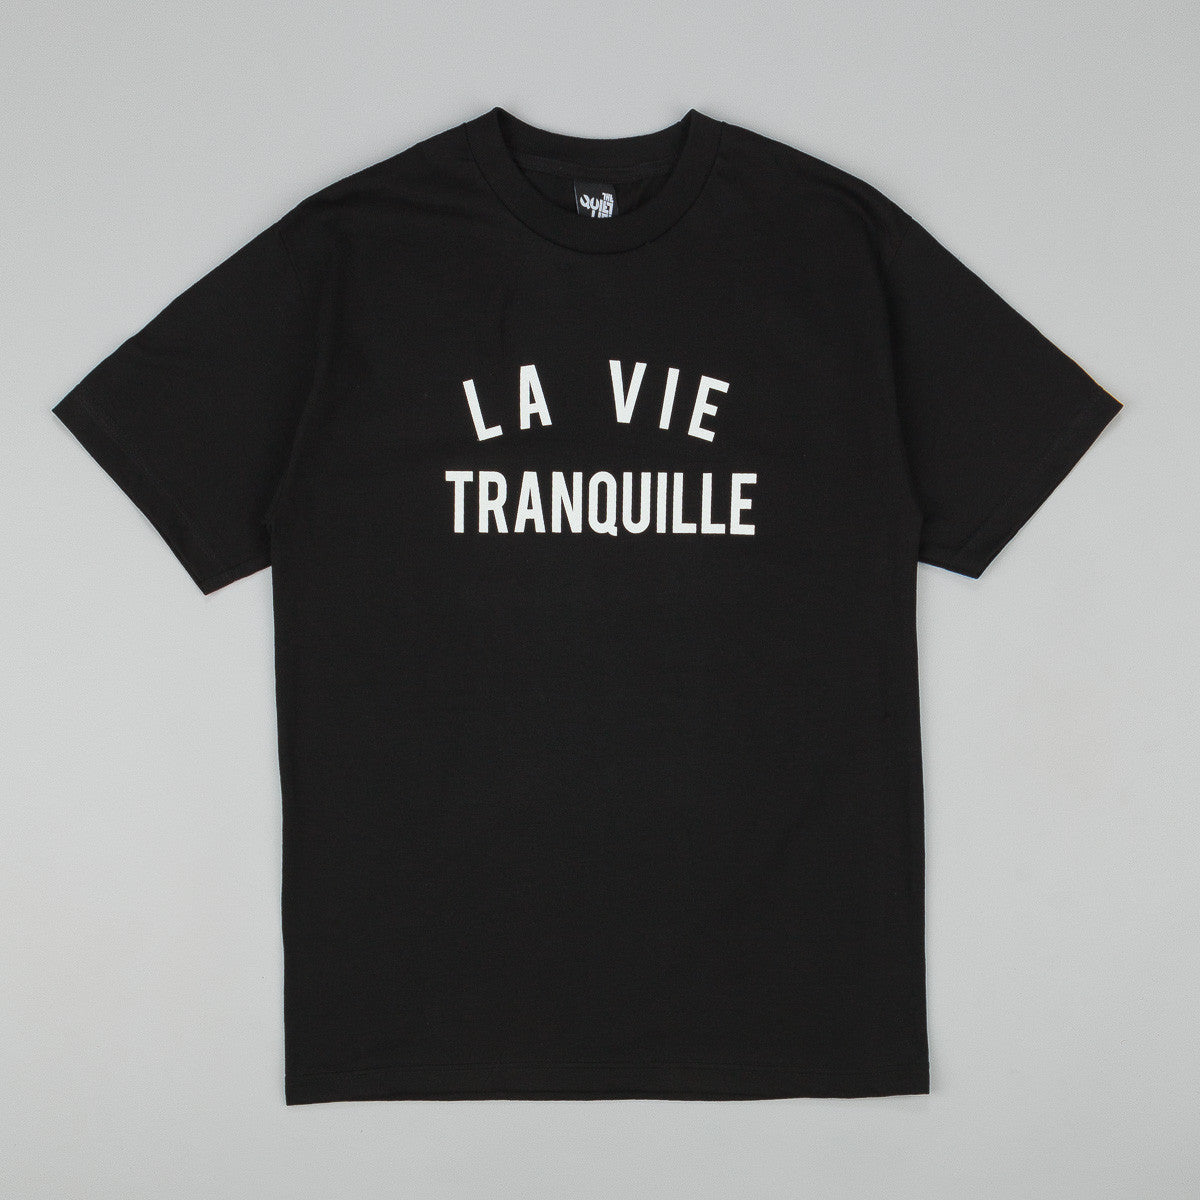 The Quiet Life La Vie T-Shirt - Black